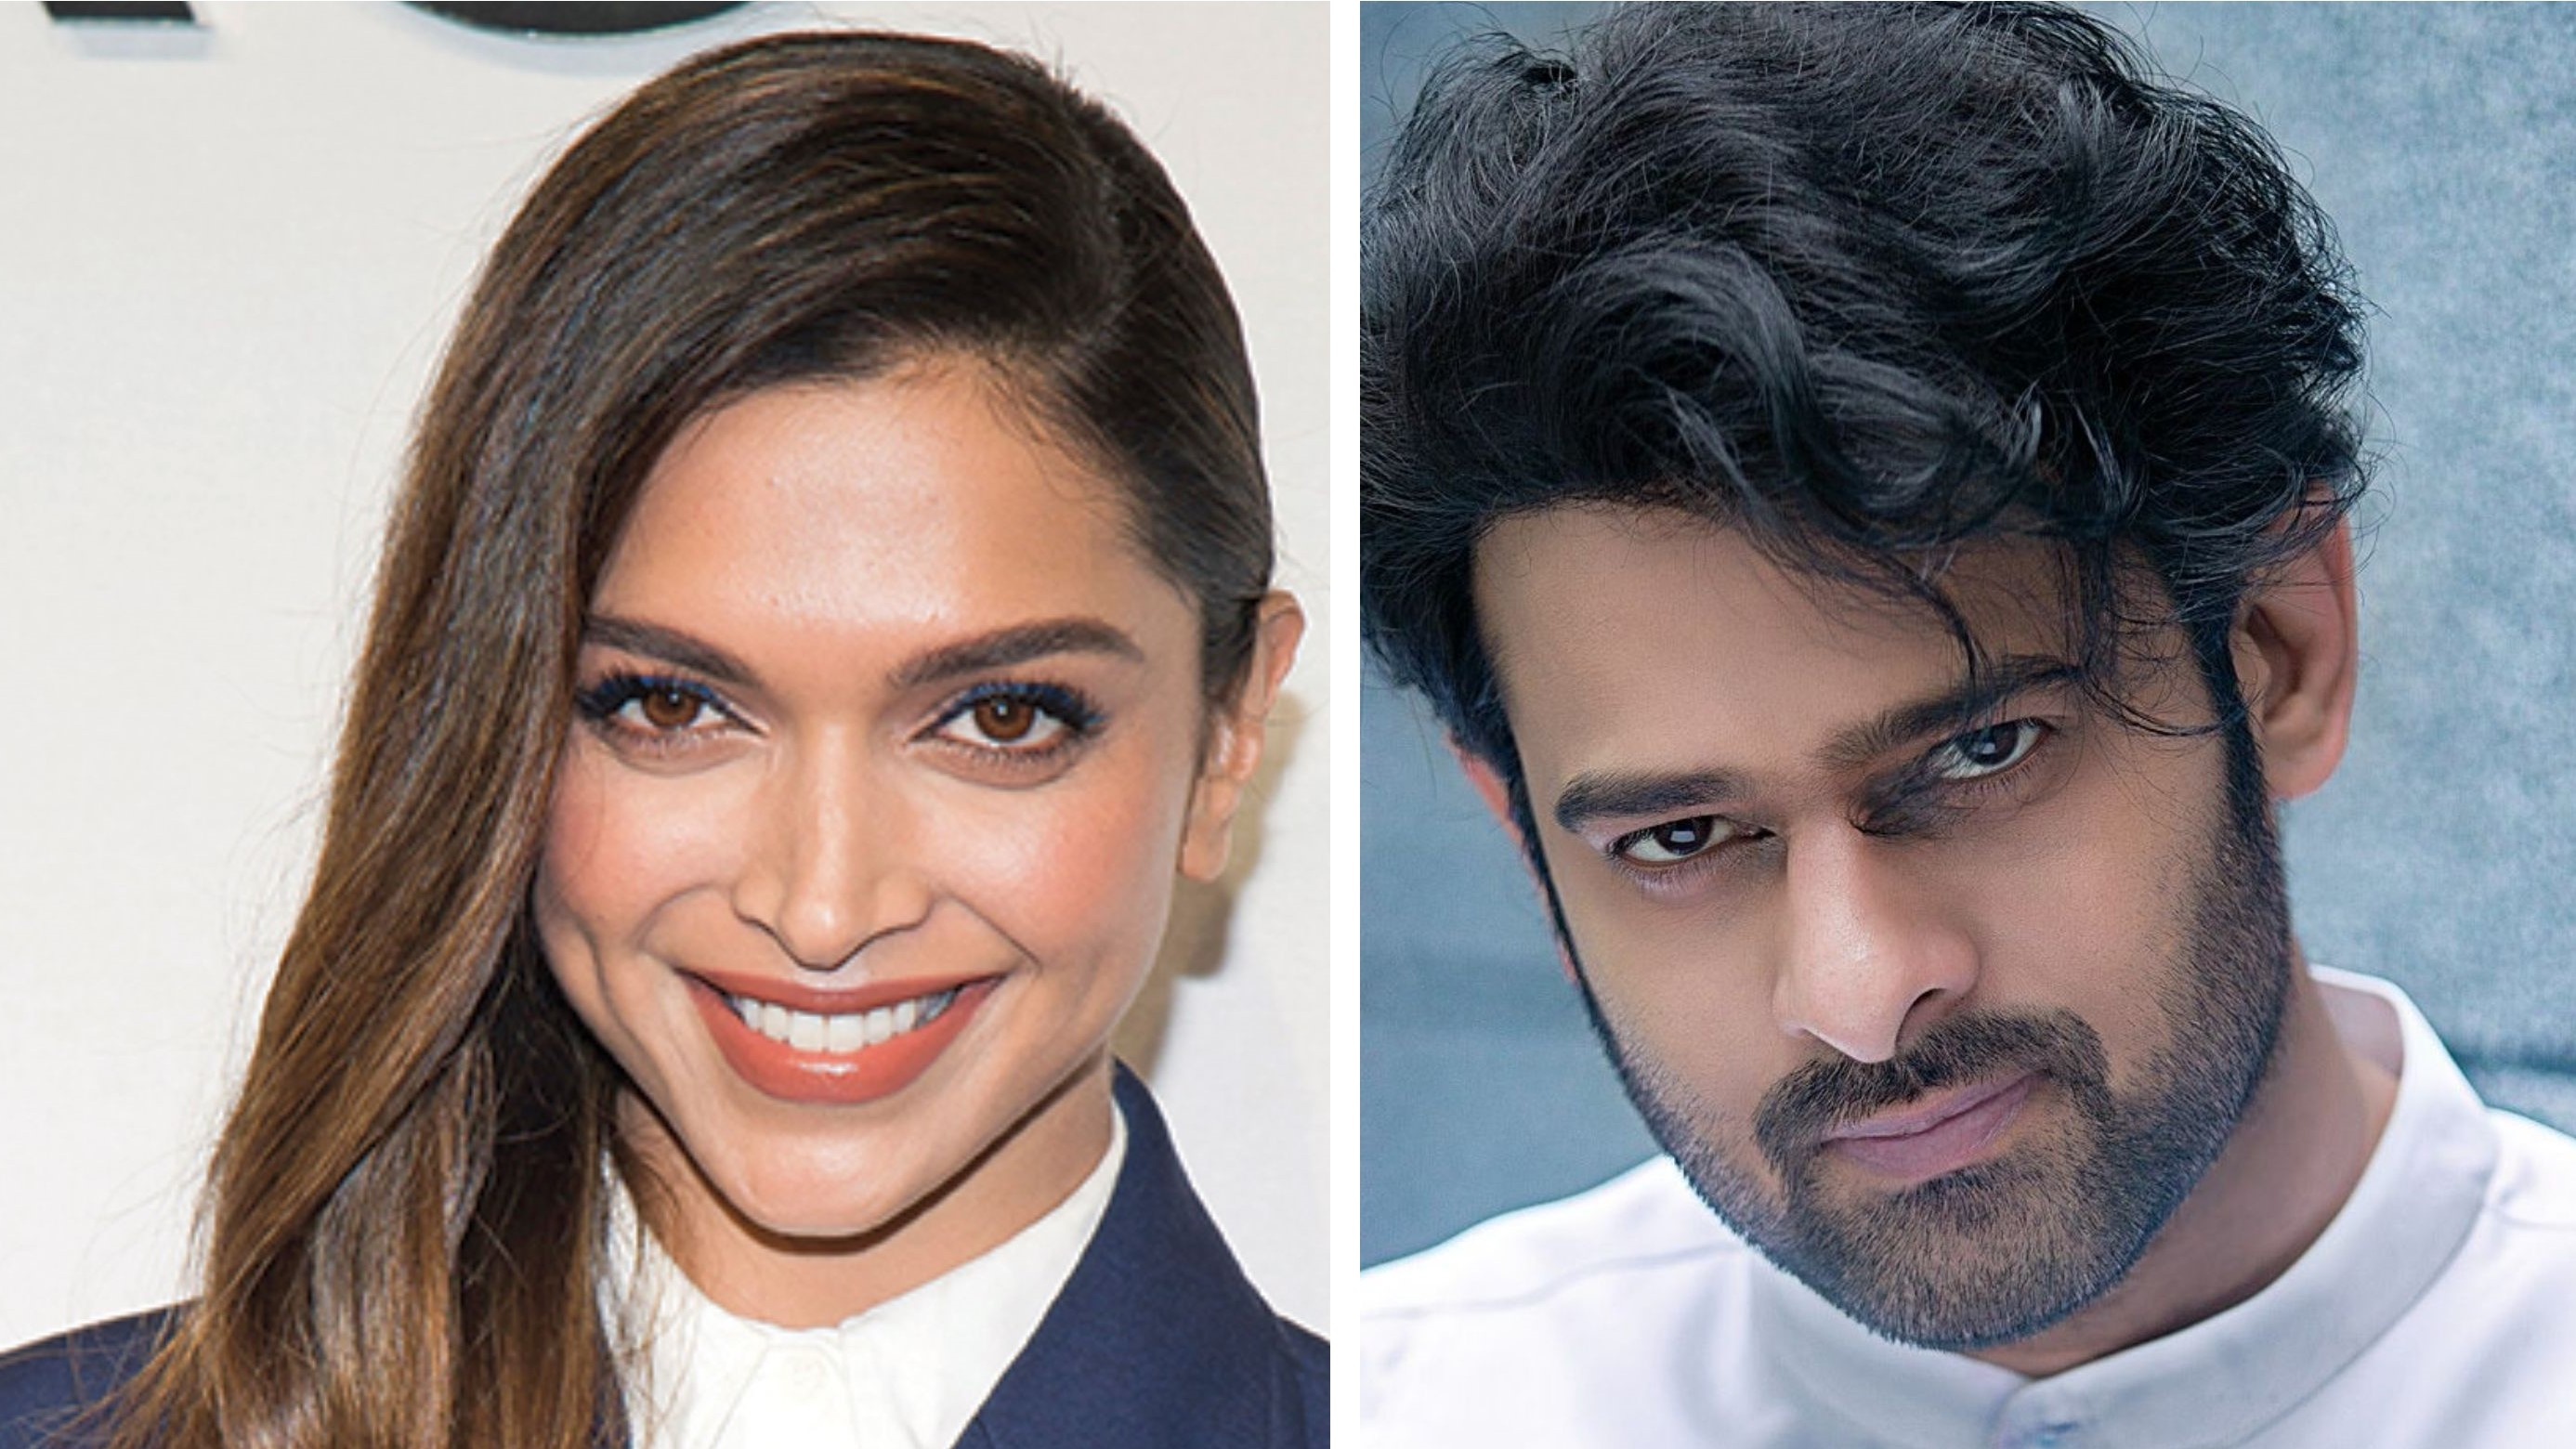 Prabhas and Deepika Padukone Set to Star Together For The First Time -  Variety